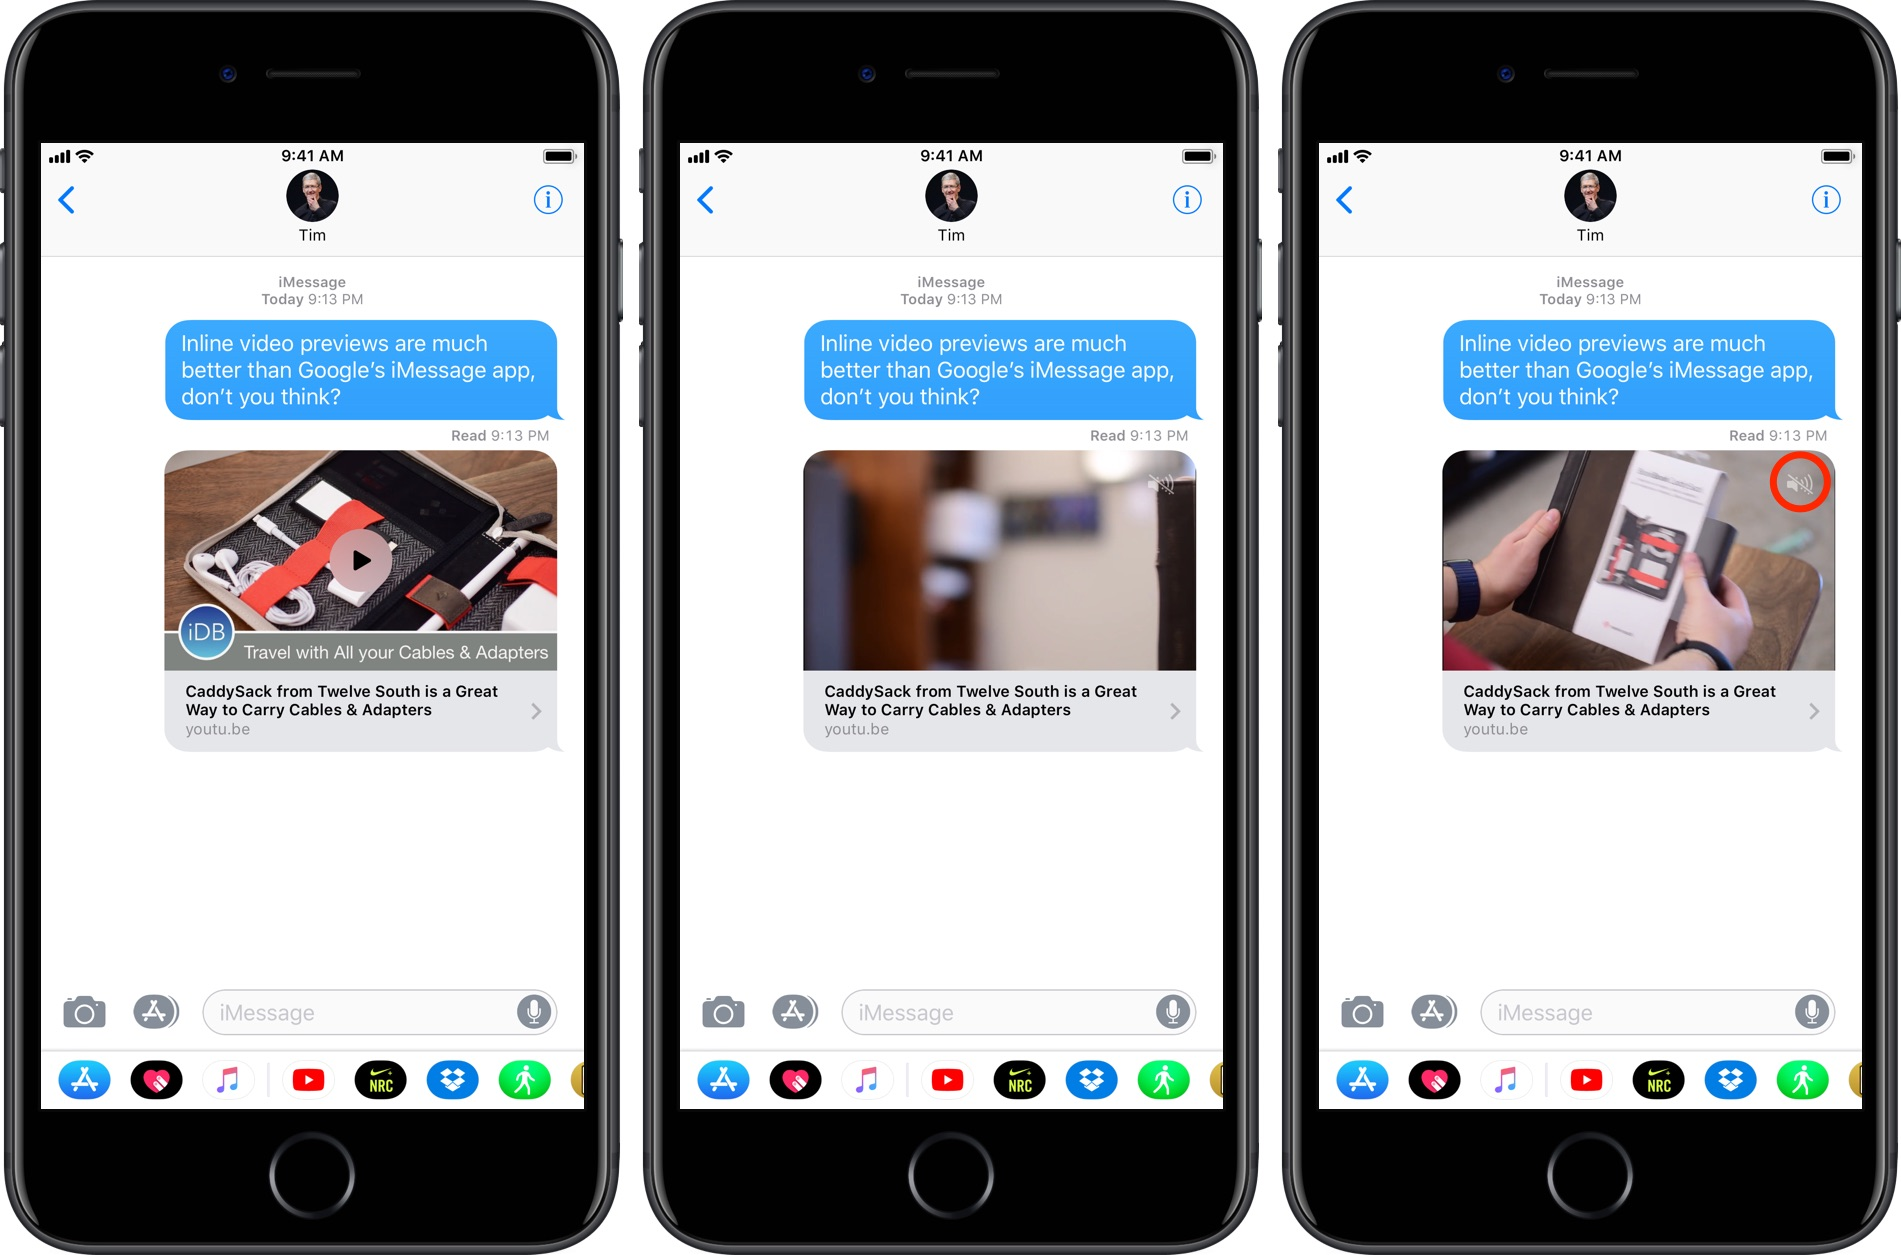 Three ways to share YouTube videos through iMessage